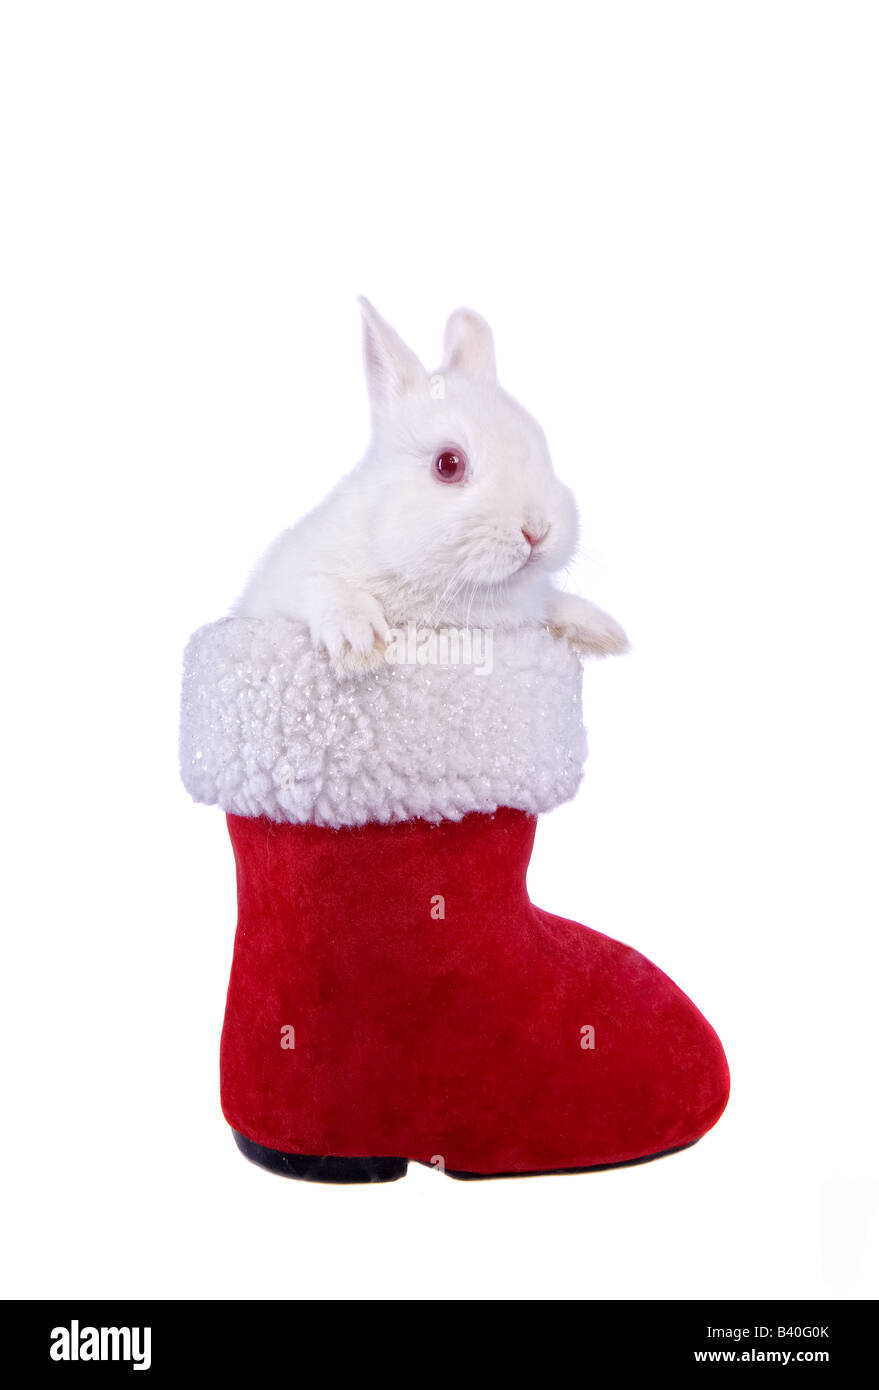 White Netherland Dwarf Bunny Rabbit in red and white Christmas Santa boot isolated on white background - Stock Image